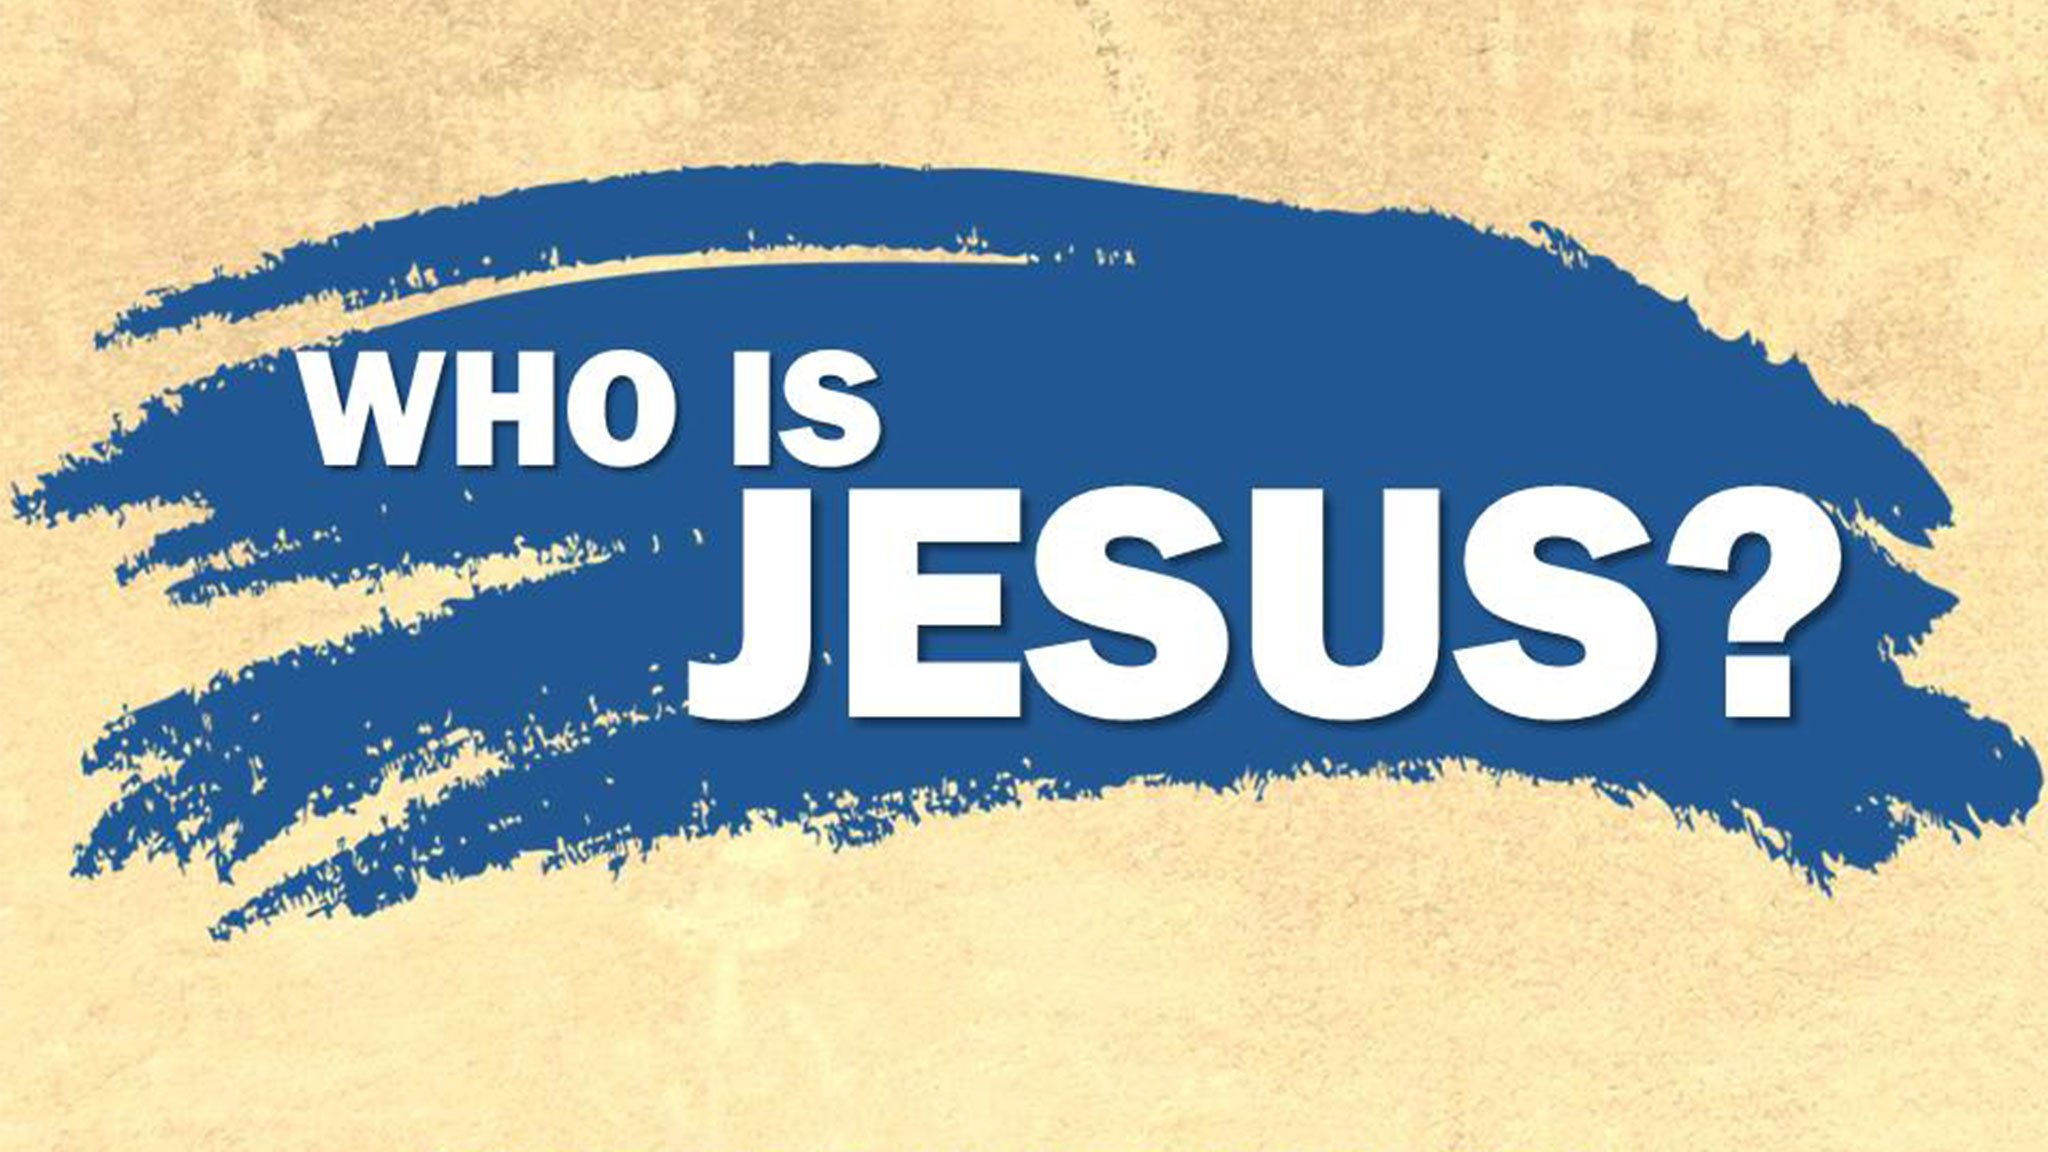 CBC_2021_05_23_who_is_jesus_Outline_Thumbnail_1920x1080